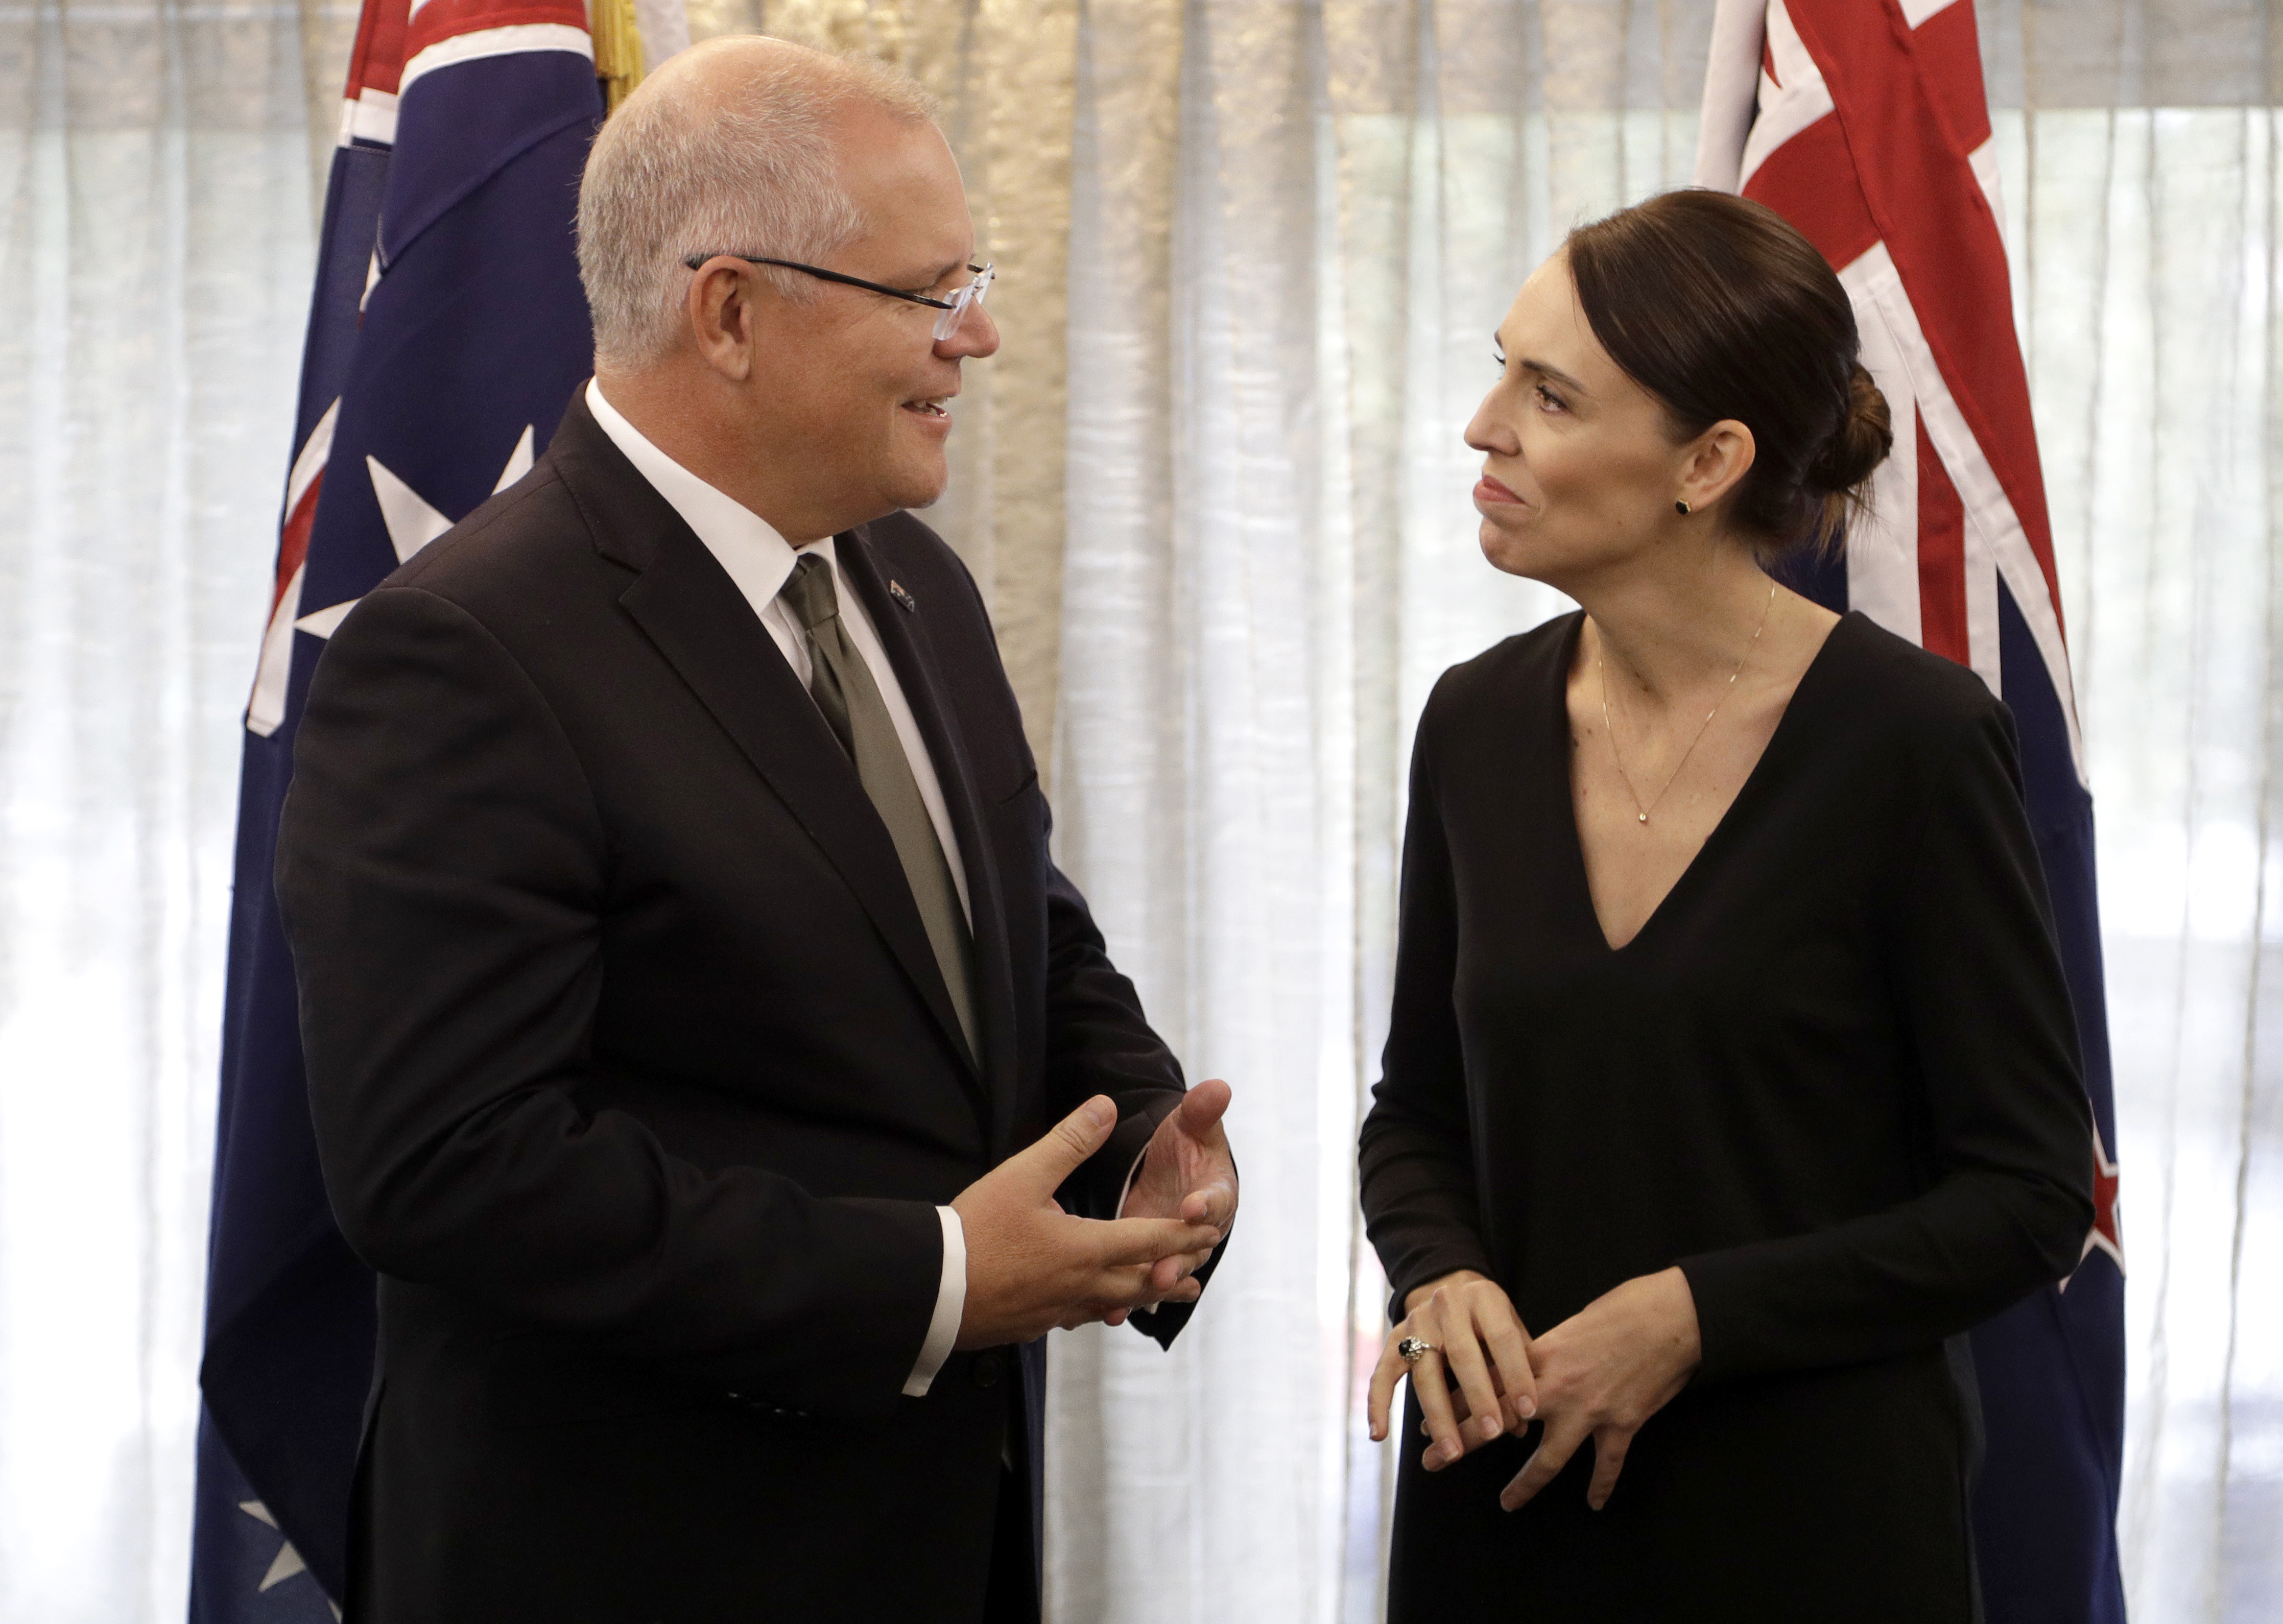 New Zealand Prime Minister Jacinda Ardern, right, talks with Australian Prime Minister Scott Morrison at a bilateral meeting following a national remembrance service for the victims of the March 15 mosques terrorist attack in Christchurch, New Zealand, Friday, March 29, 2019. (AP Photo/Mark Baker, Pool)